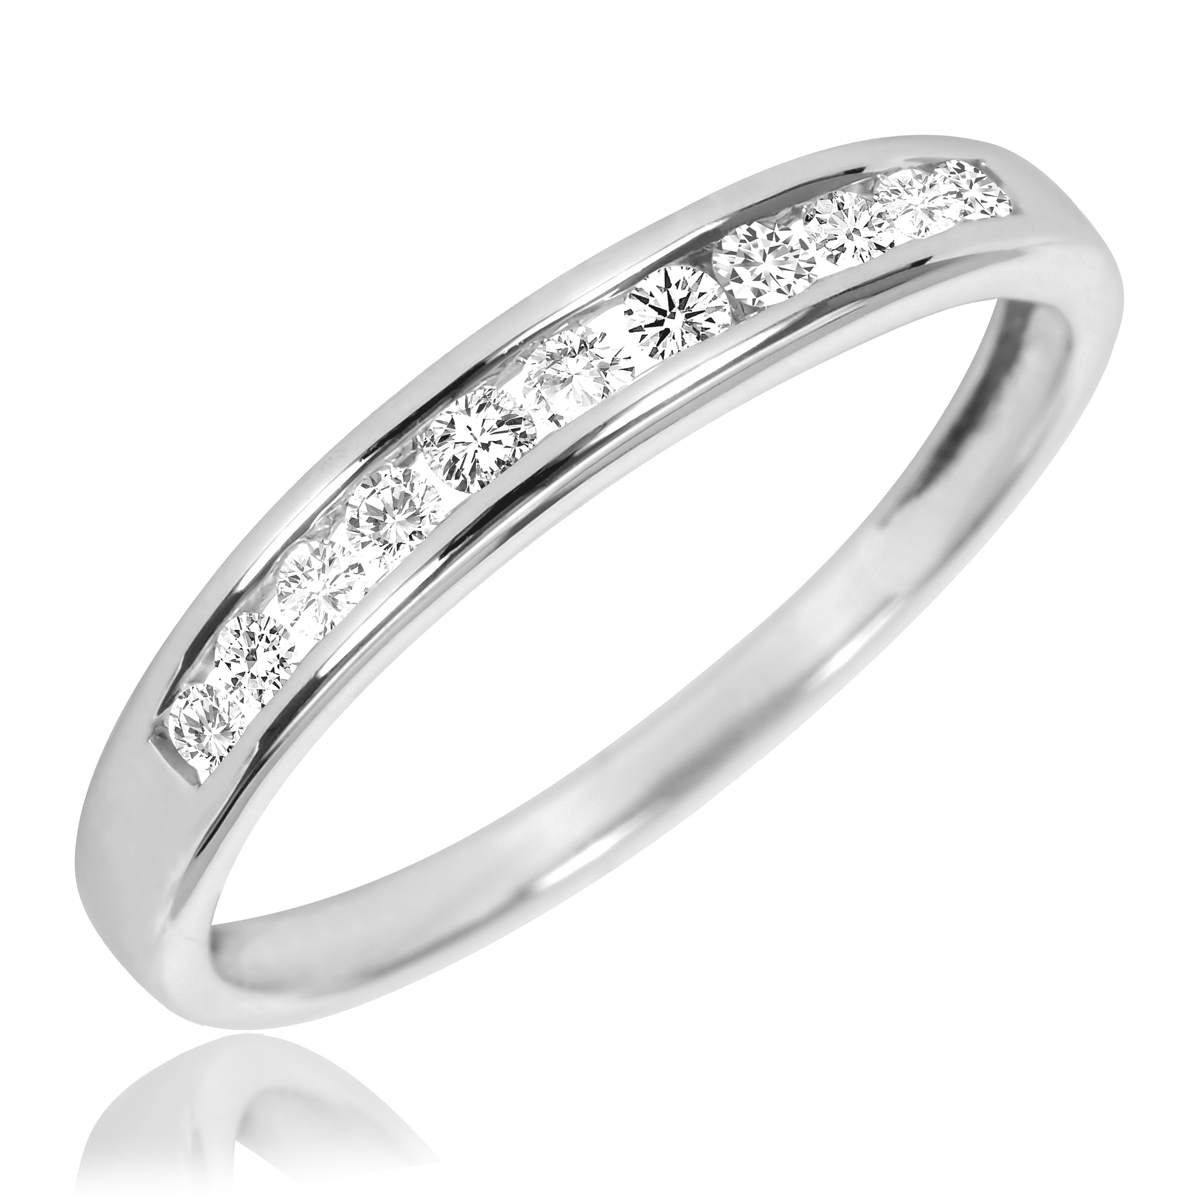 tw diamond womens bridal wedding ring set 10k white gold my trio rings br500w10k - Wedding Ring Set For Her